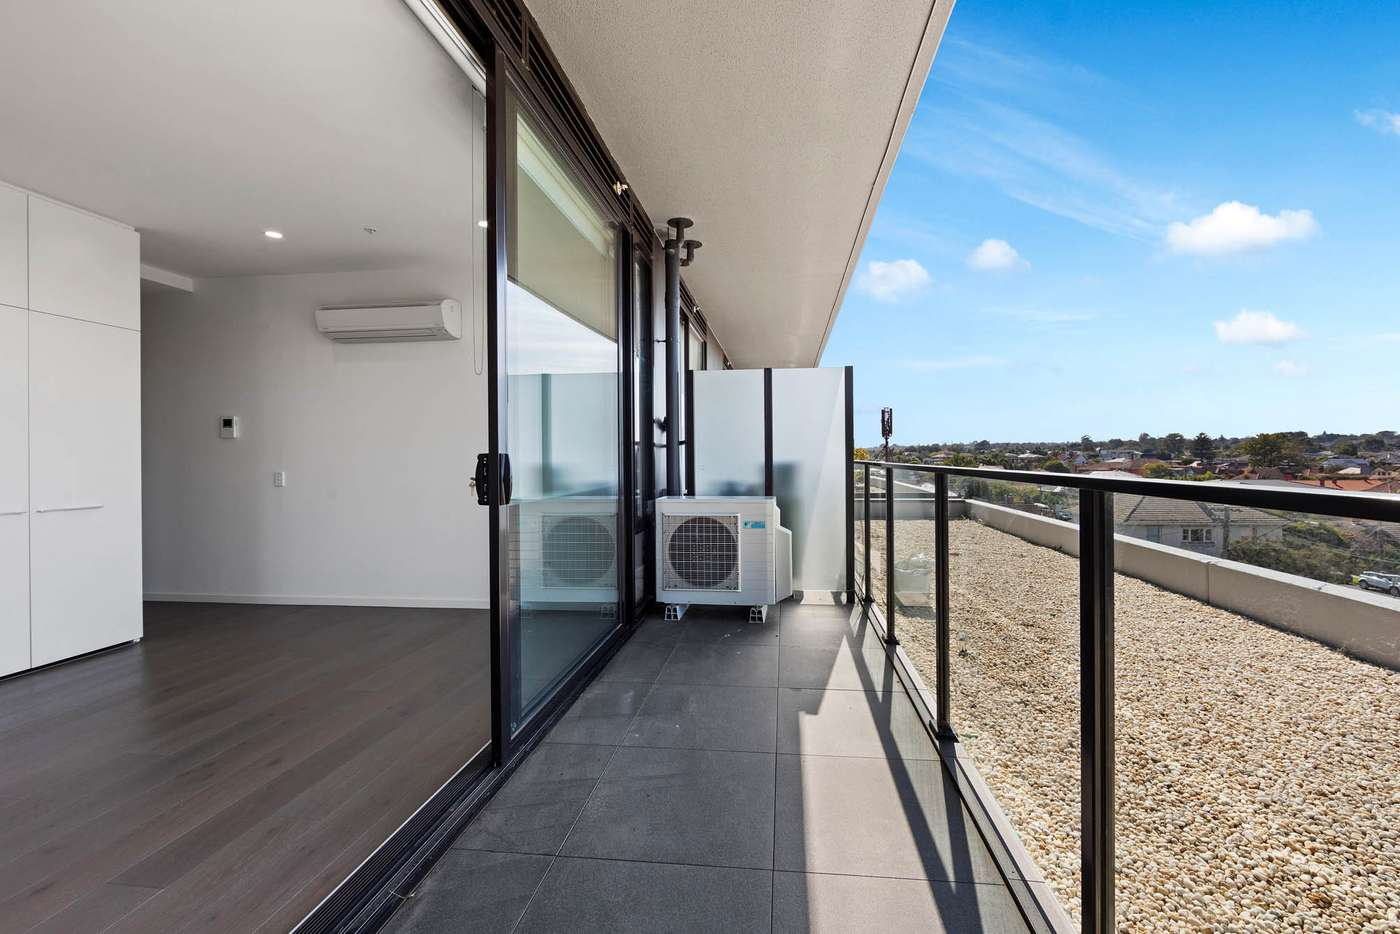 Main view of Homely apartment listing, 313/138 Glen Eira Road, Elsternwick VIC 3185